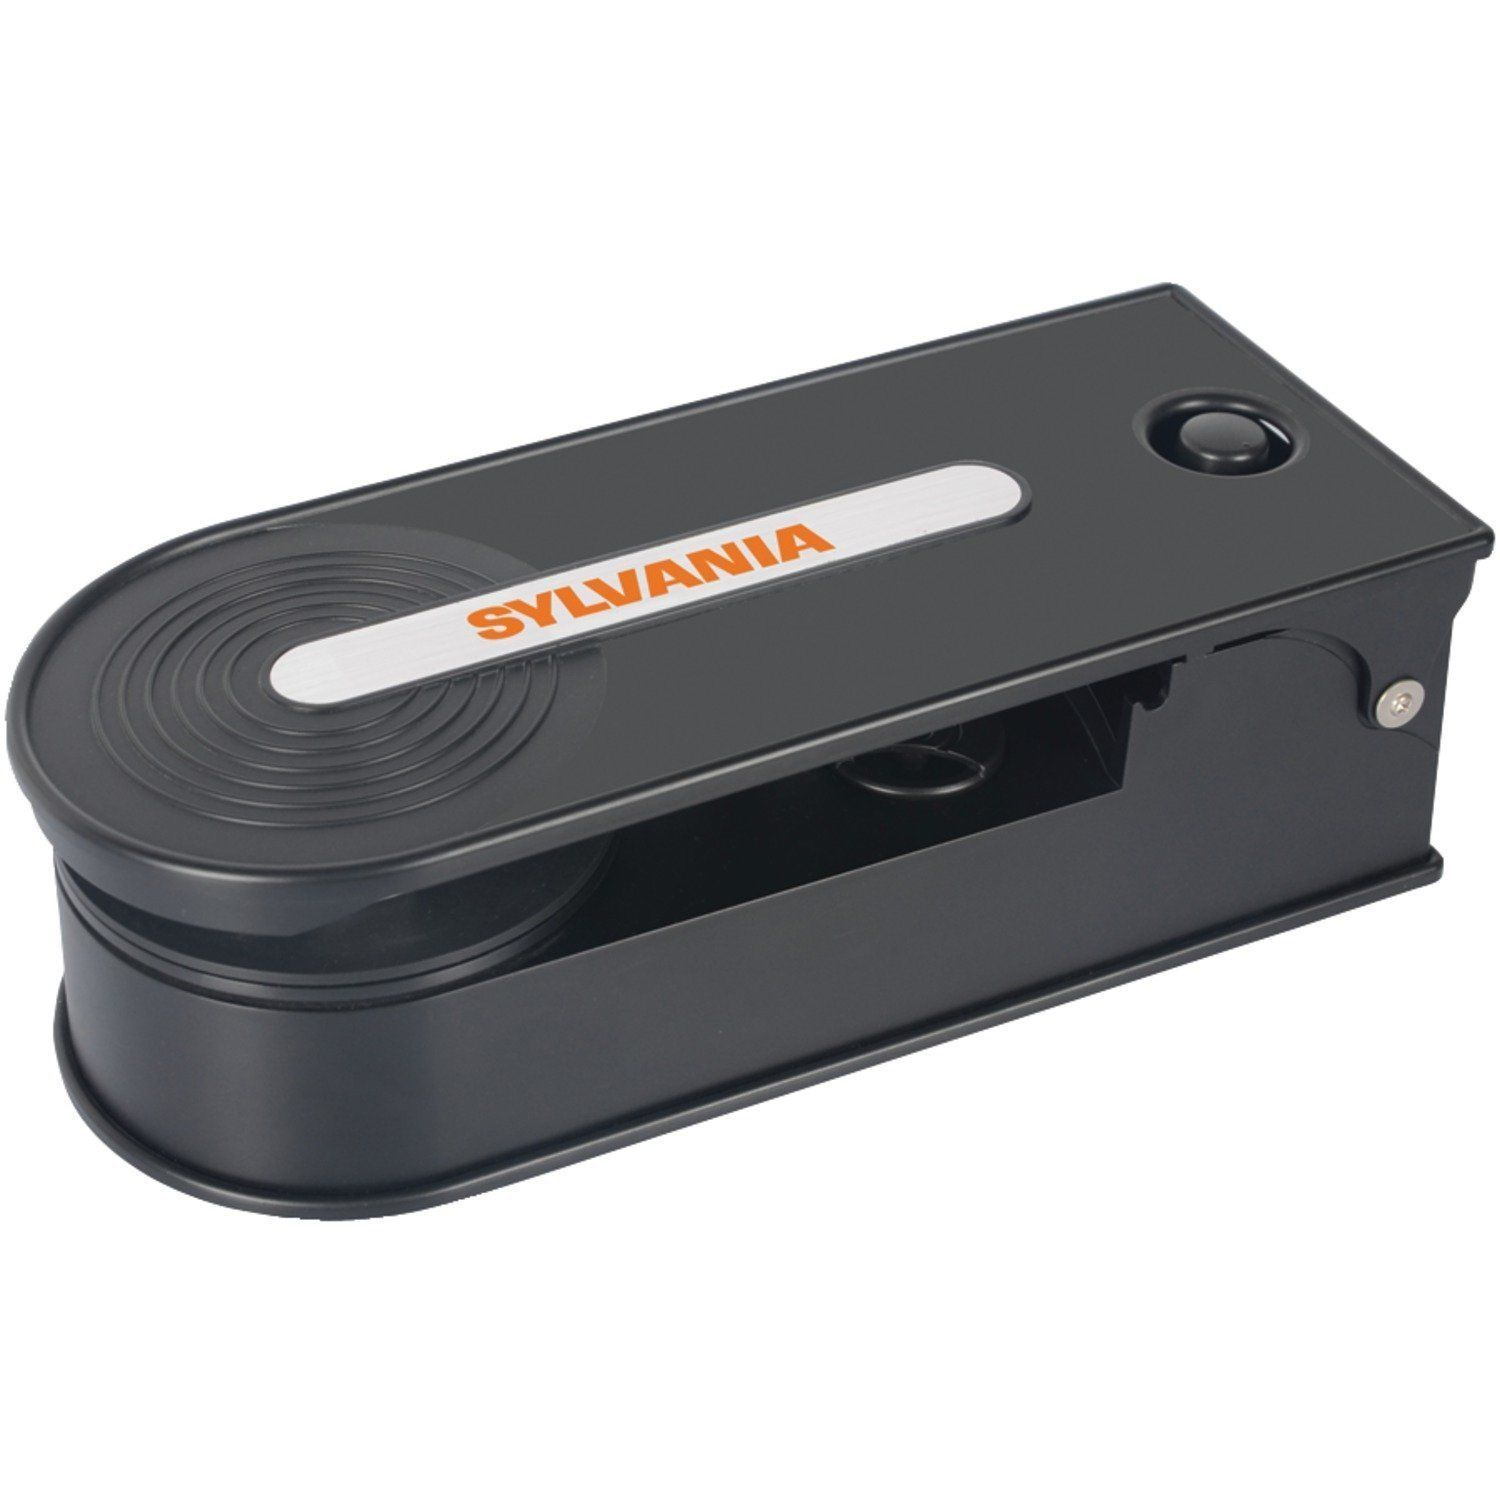 Hot Sale! $33.95 Sylvania Turntable Record Player with USB Encoding, Black